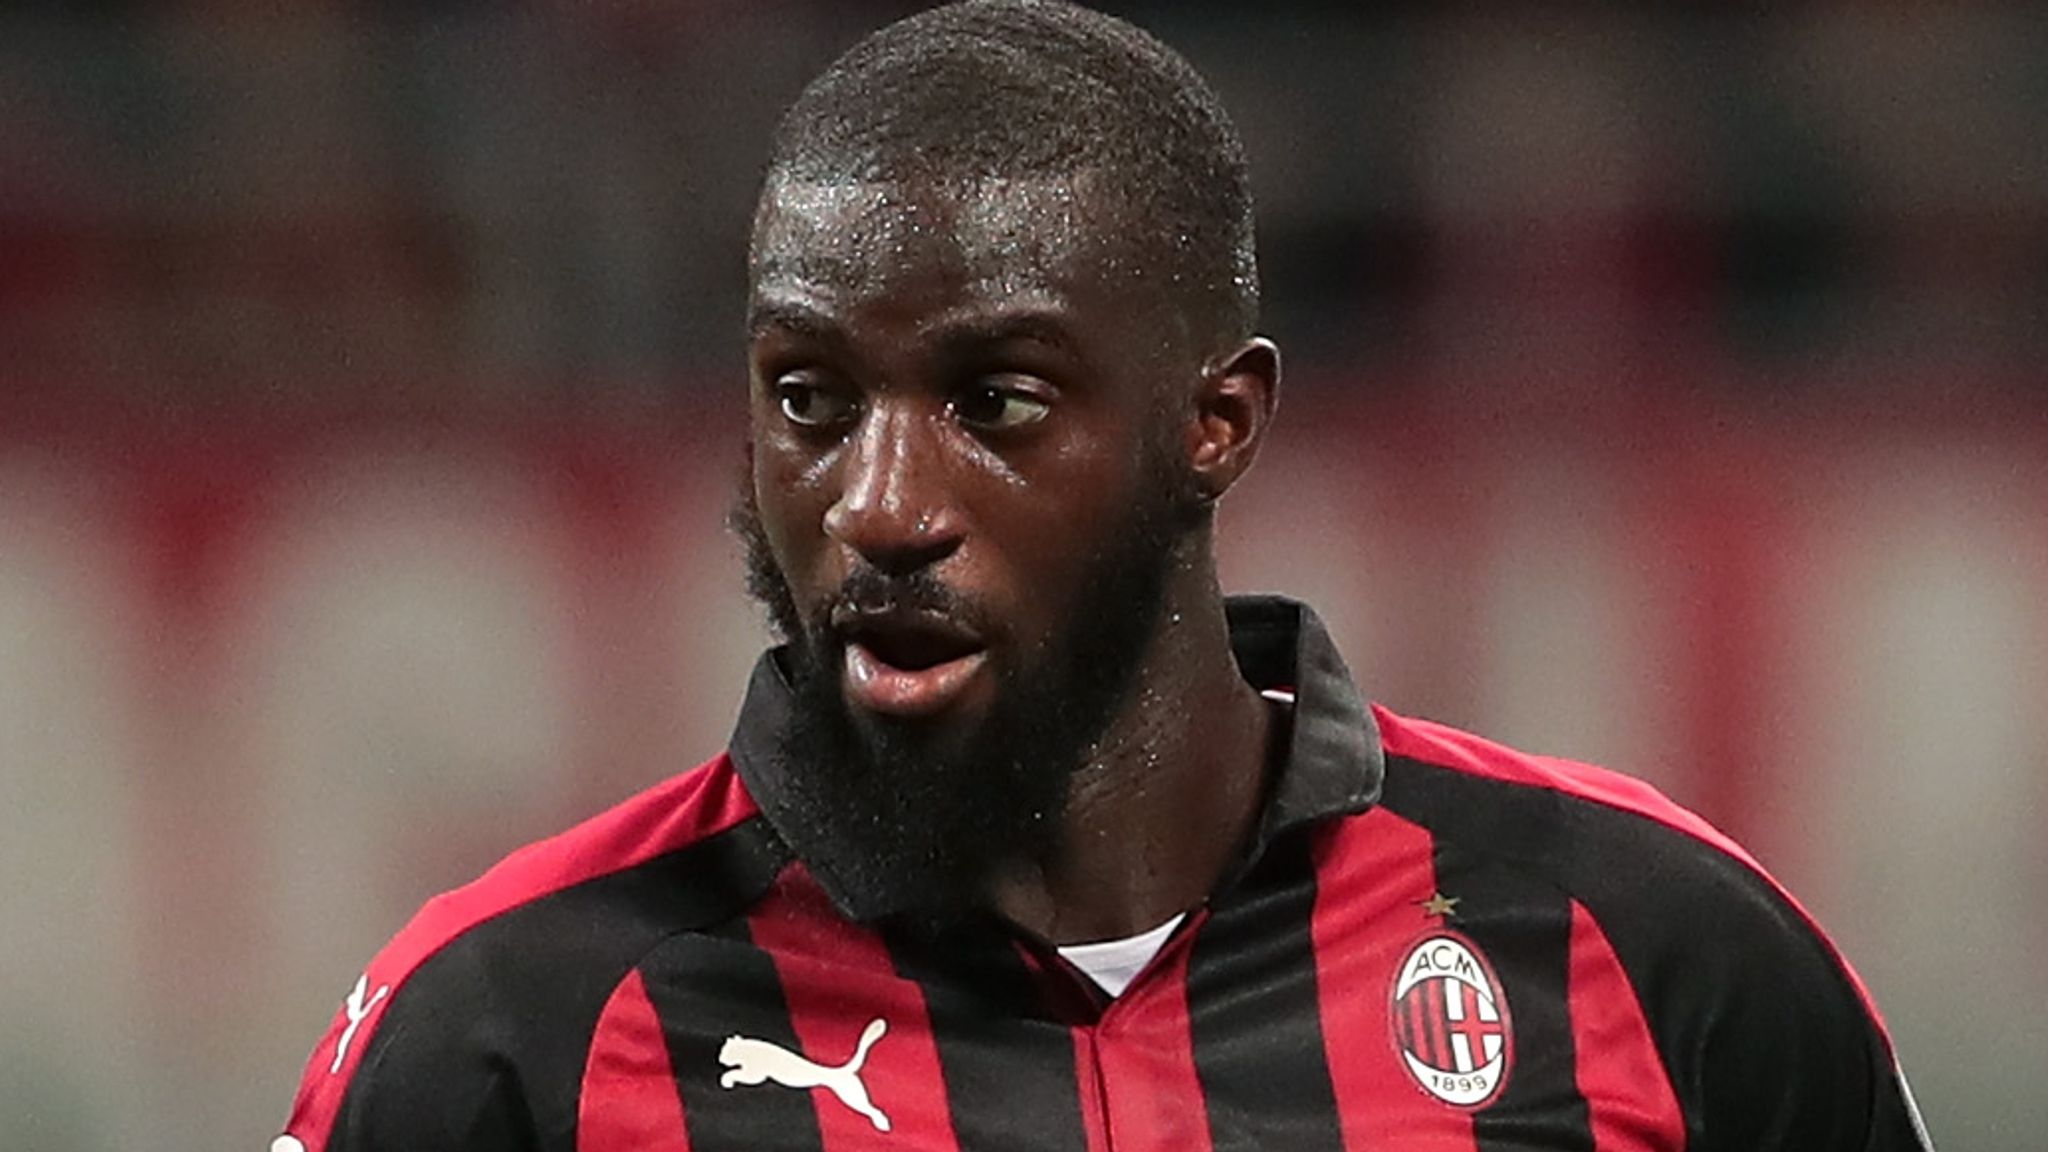 Tiemoue Bakayoko has left Chelsea just in time, with transfer windows across Europe closing left right and centre. The central midfielder looked close to a return to AC Milan, where he had been on loan two seasons ago, but the move didn't work out. TuttoMercatoWeb today explain exactly why. Earlier in the summer, Inter Milan were chasing much coveted central midfielder Sandro Tonali. AC were going to have to settle for unwanted Chelsea man Bakayoko on loan. But when AC Milan managed to pull off the coup of signing Tonali themselves, suddenly Bakayoko was an unnecessary extra. With not long left to conclude a deal, the Blues were back to square one. Luckily for them, Baka's manager from his spell at Milan – Gennaro Gattuso – had moved to Napoli last season, and was still keen on bringing his old charge back to Serie A. In the end, this might work out for the best, for Milan, Bakayoko and Napoli.